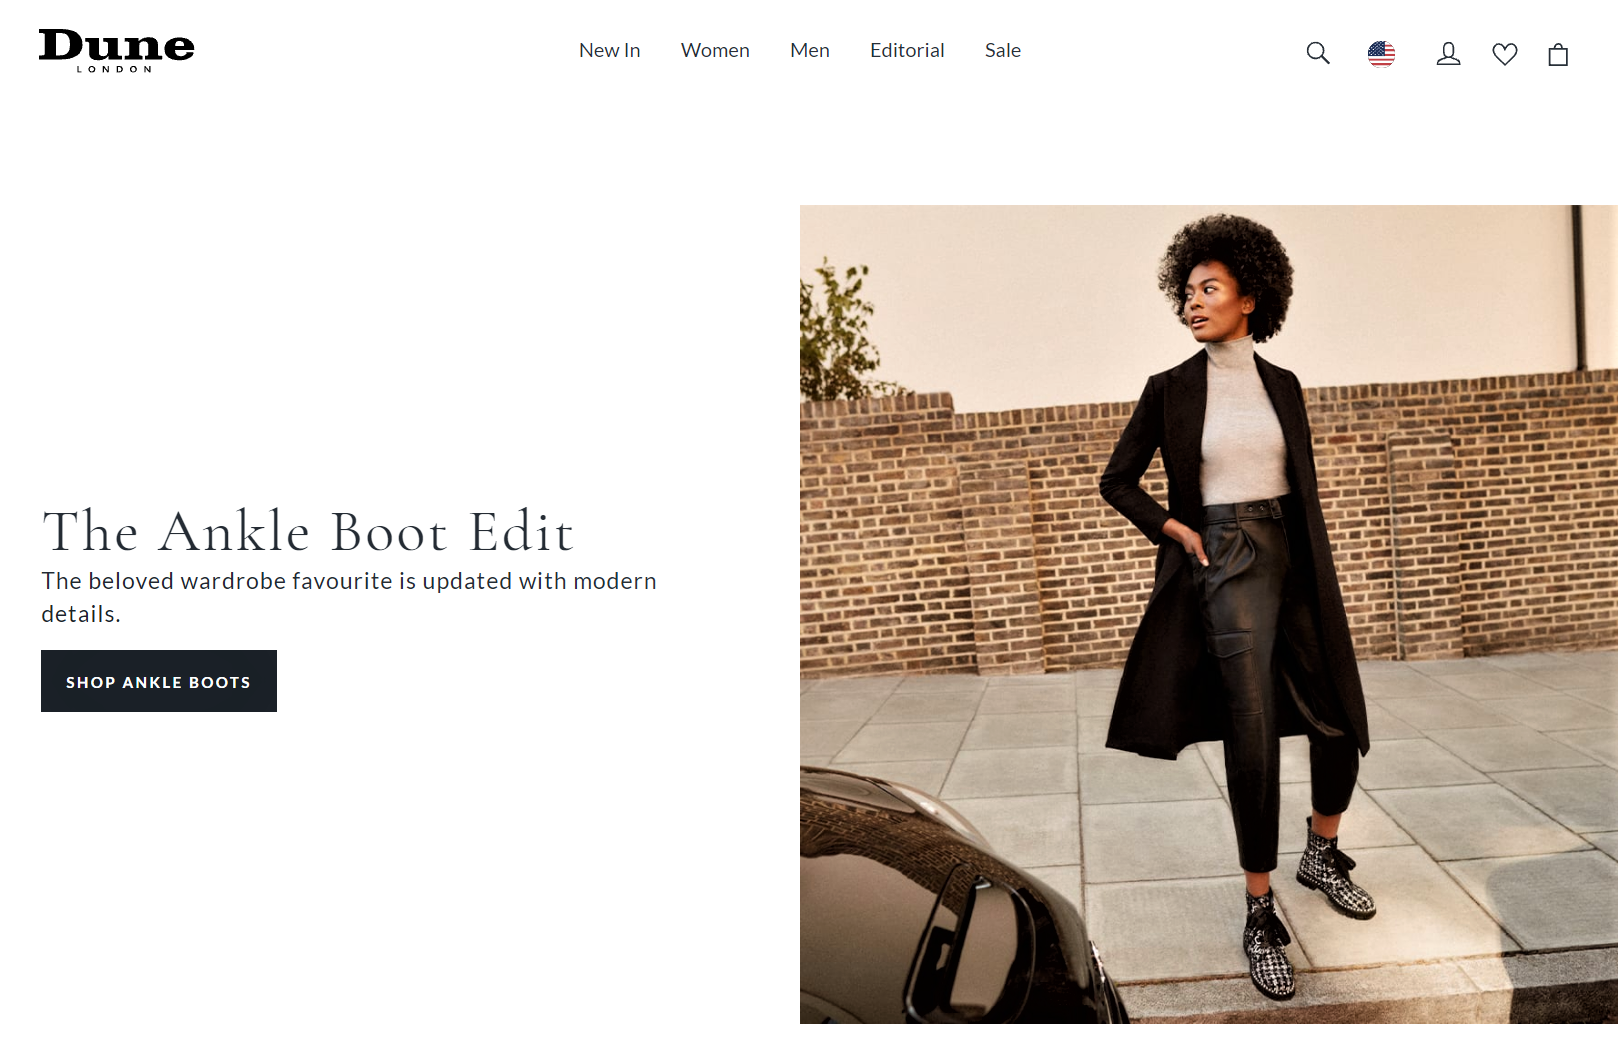 Example of influencer marketing to improve product page UX by Dune London